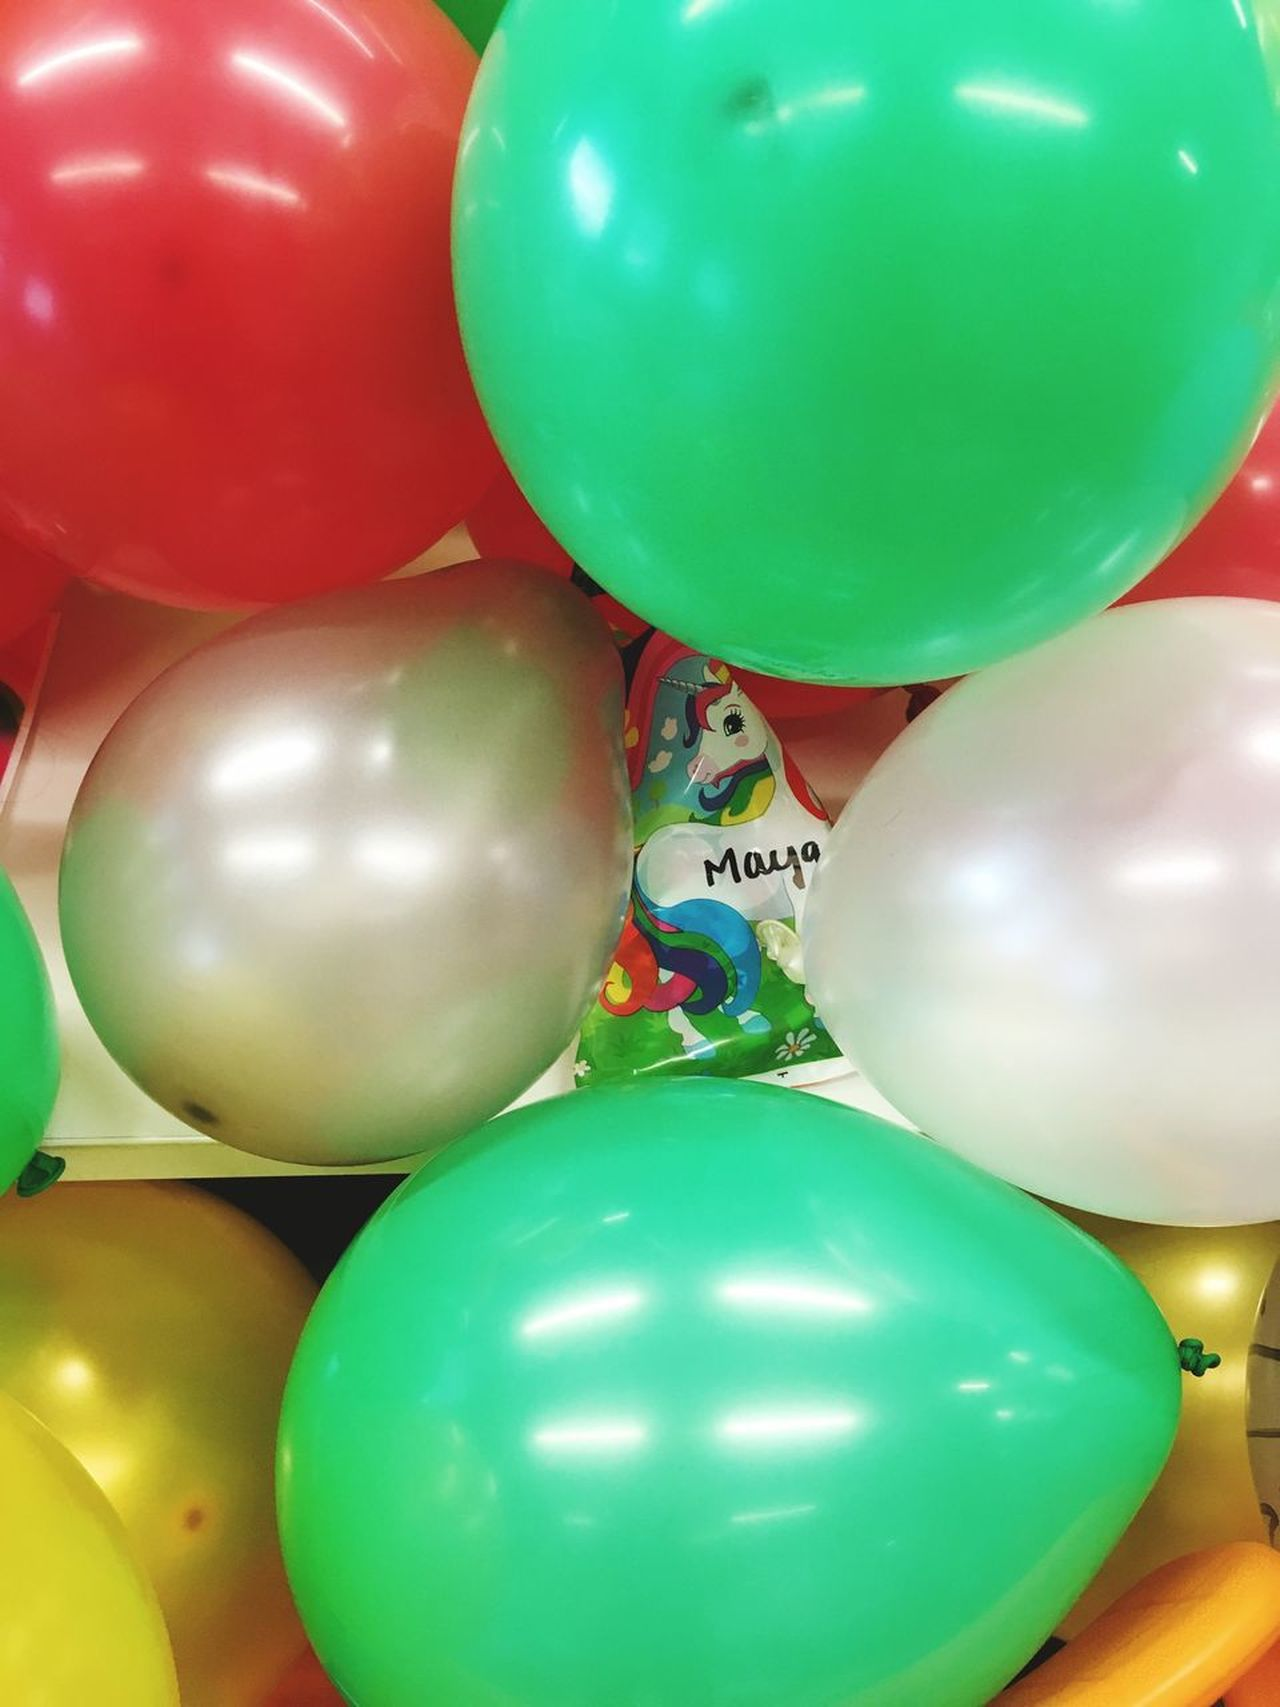 Unicorn theme party SneakPeek Party Decorations Unicorn Balloon Celebration Helium Balloon Multi Colored Green Color Helium Indoors  Large Group Of Objects Red Party - Social Event No People Close-up Day